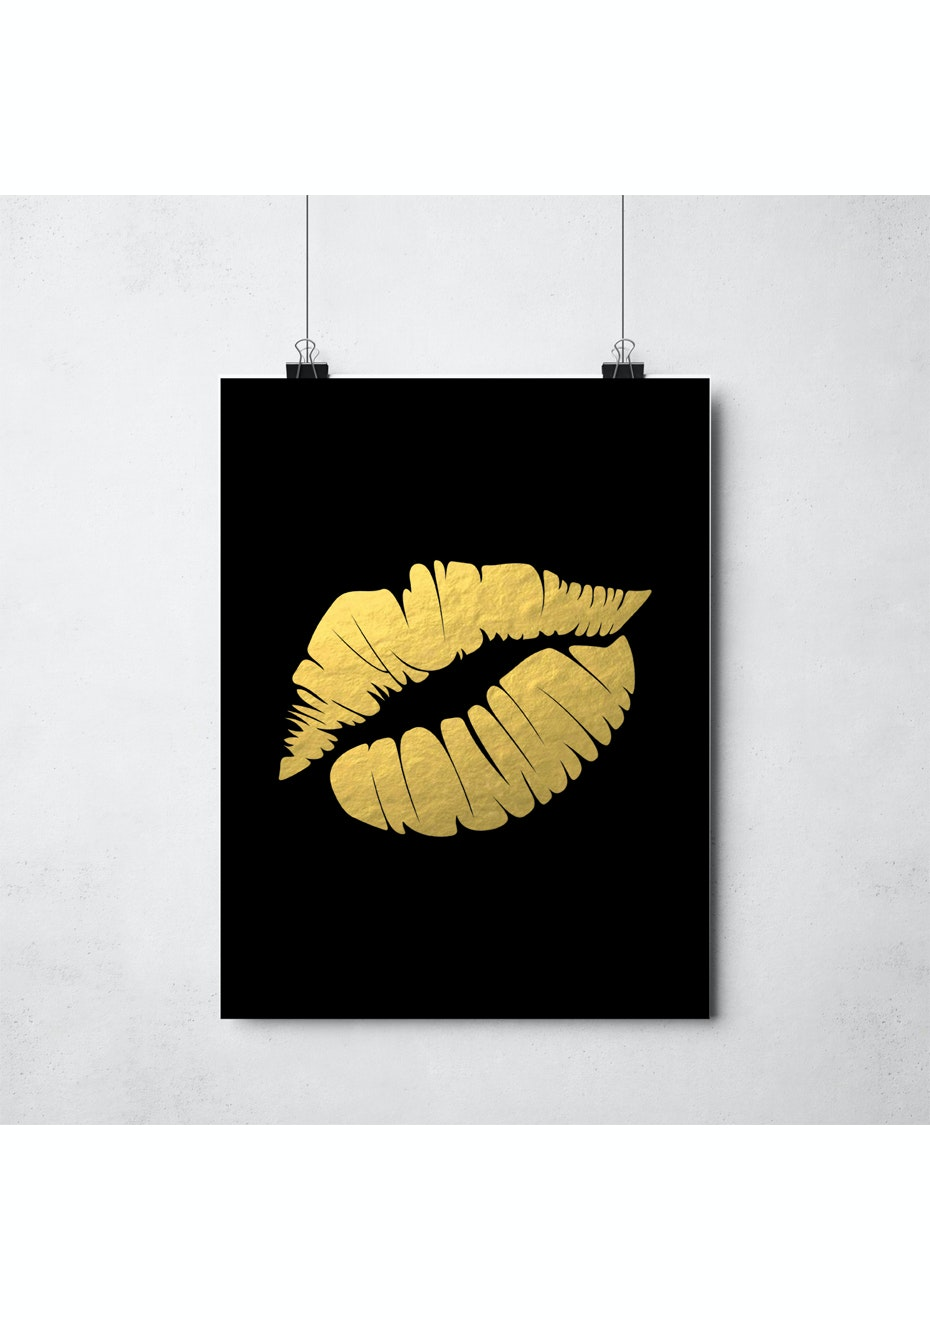 Simply Creative - Mwah - Black - A3 Gold Foil Print